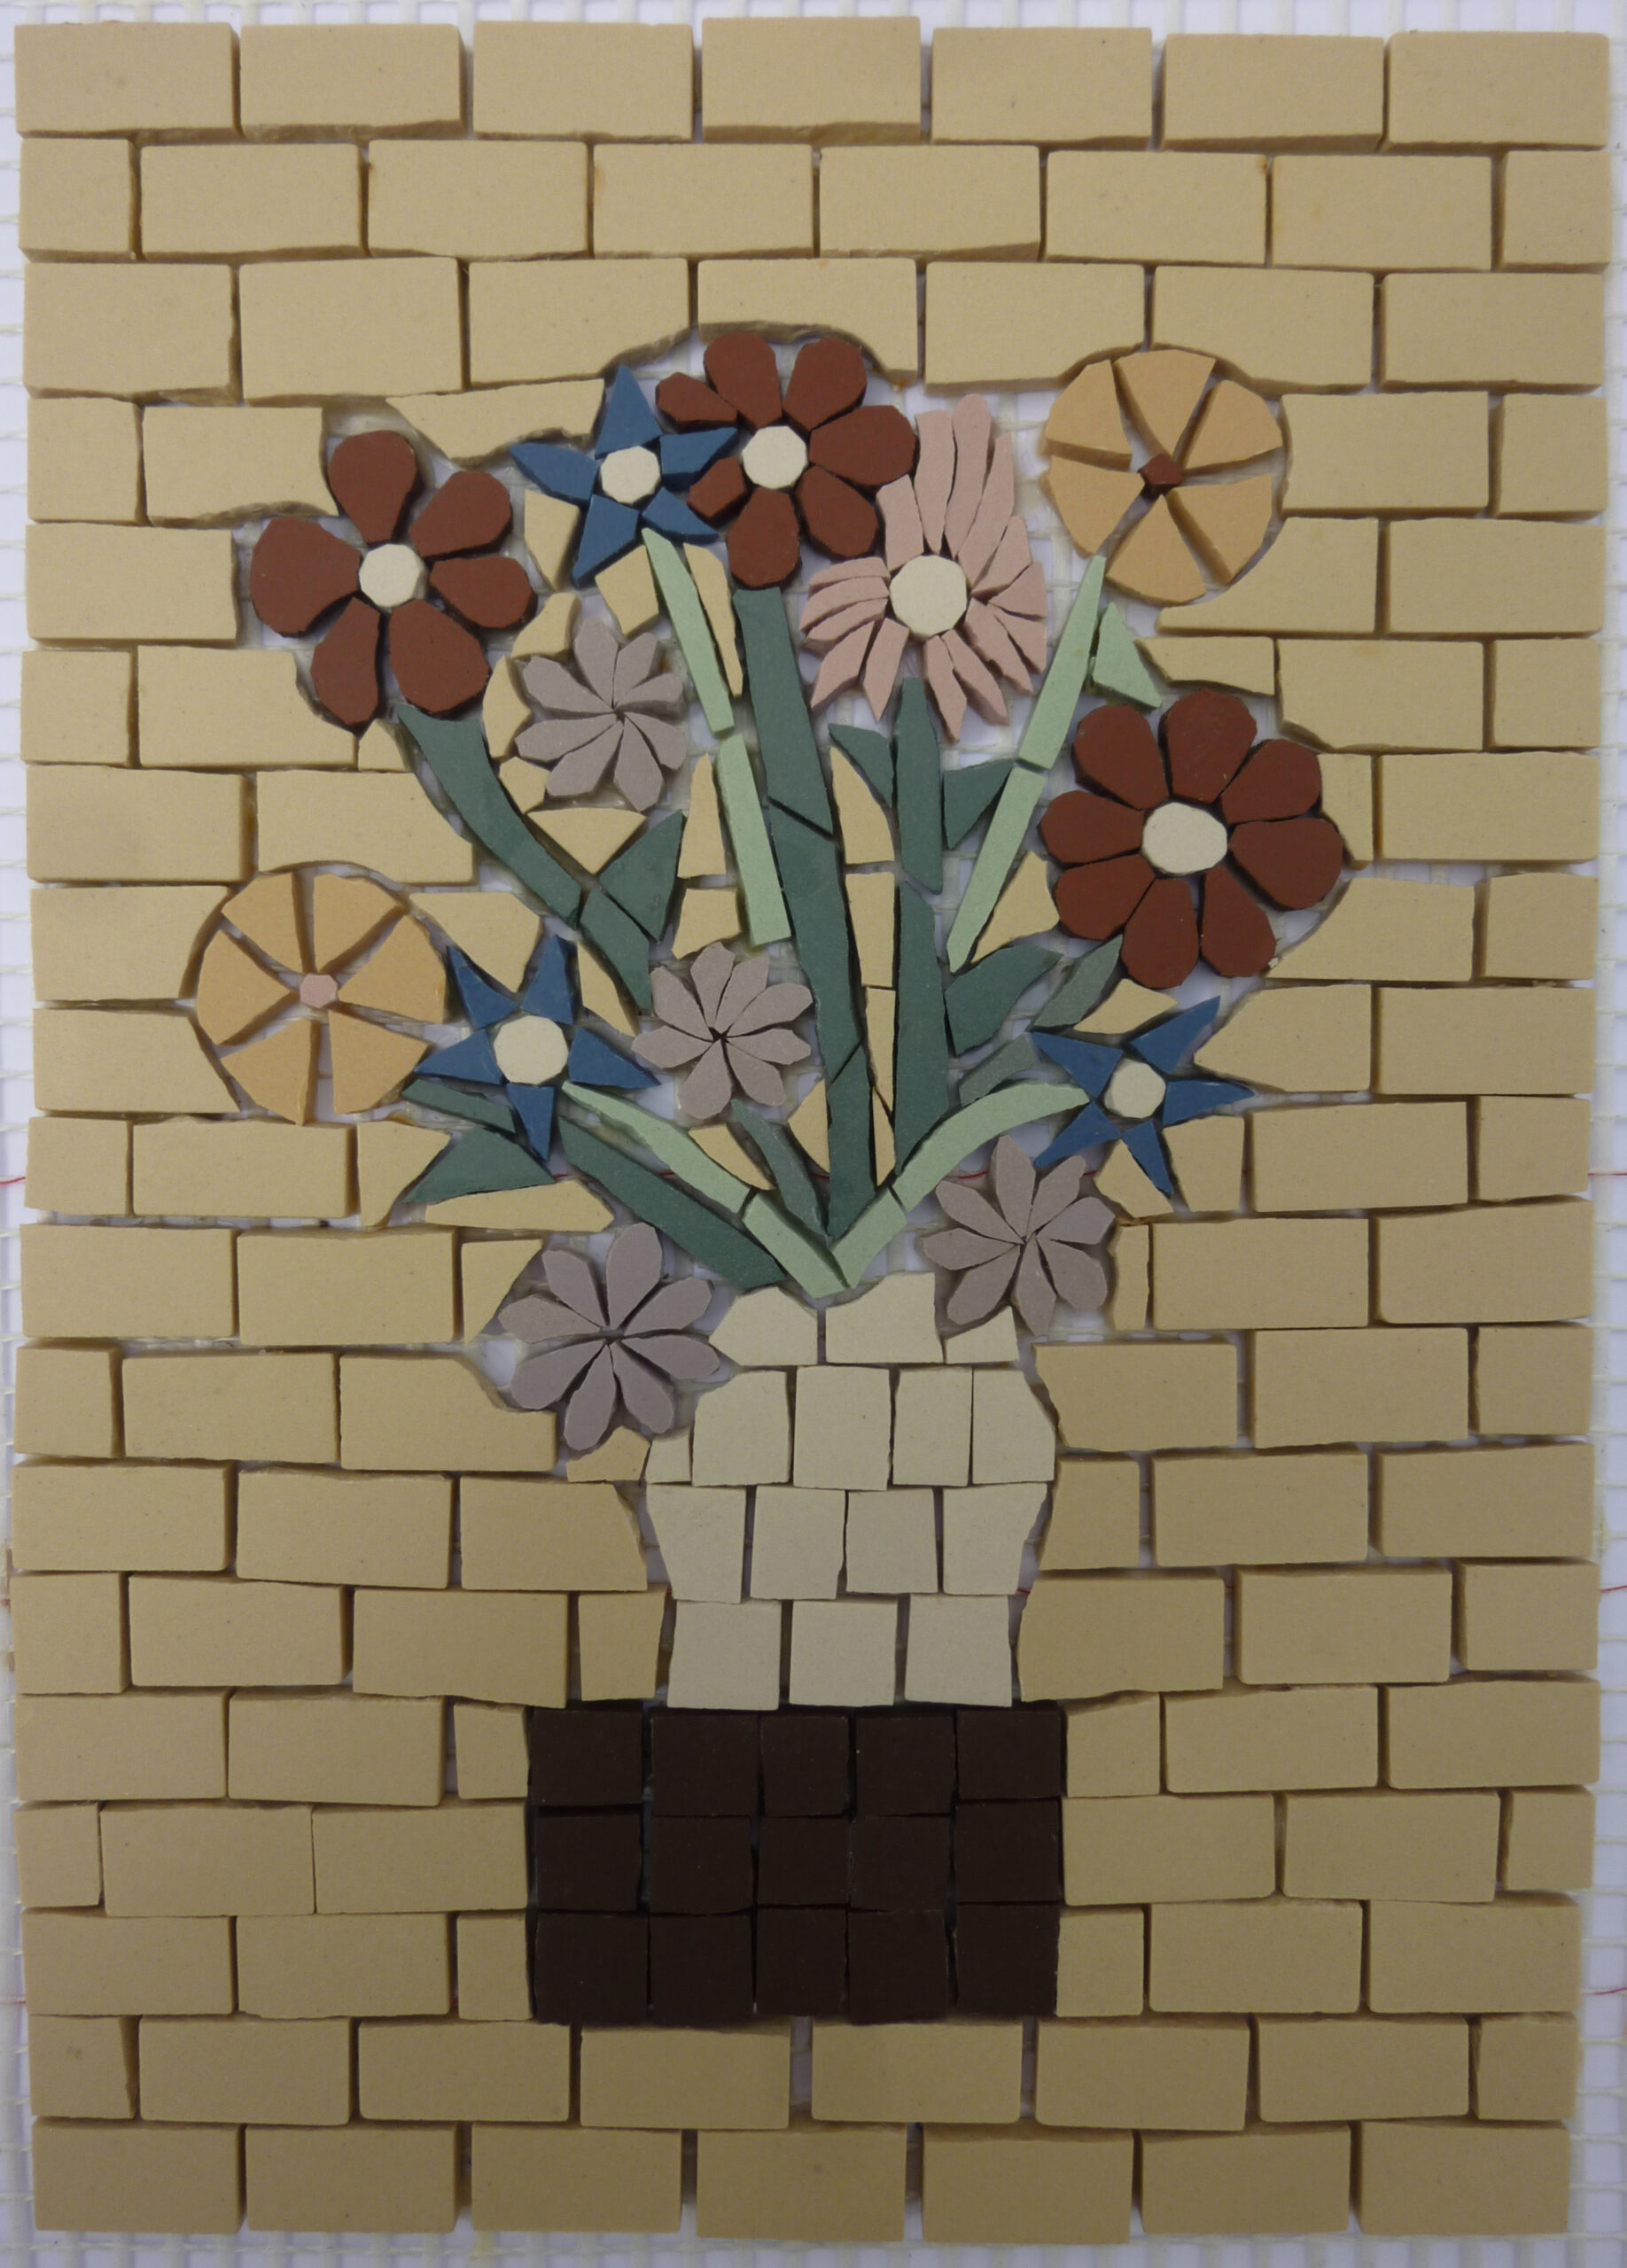 Image of a small ceramic mosaic of flowers in a vase